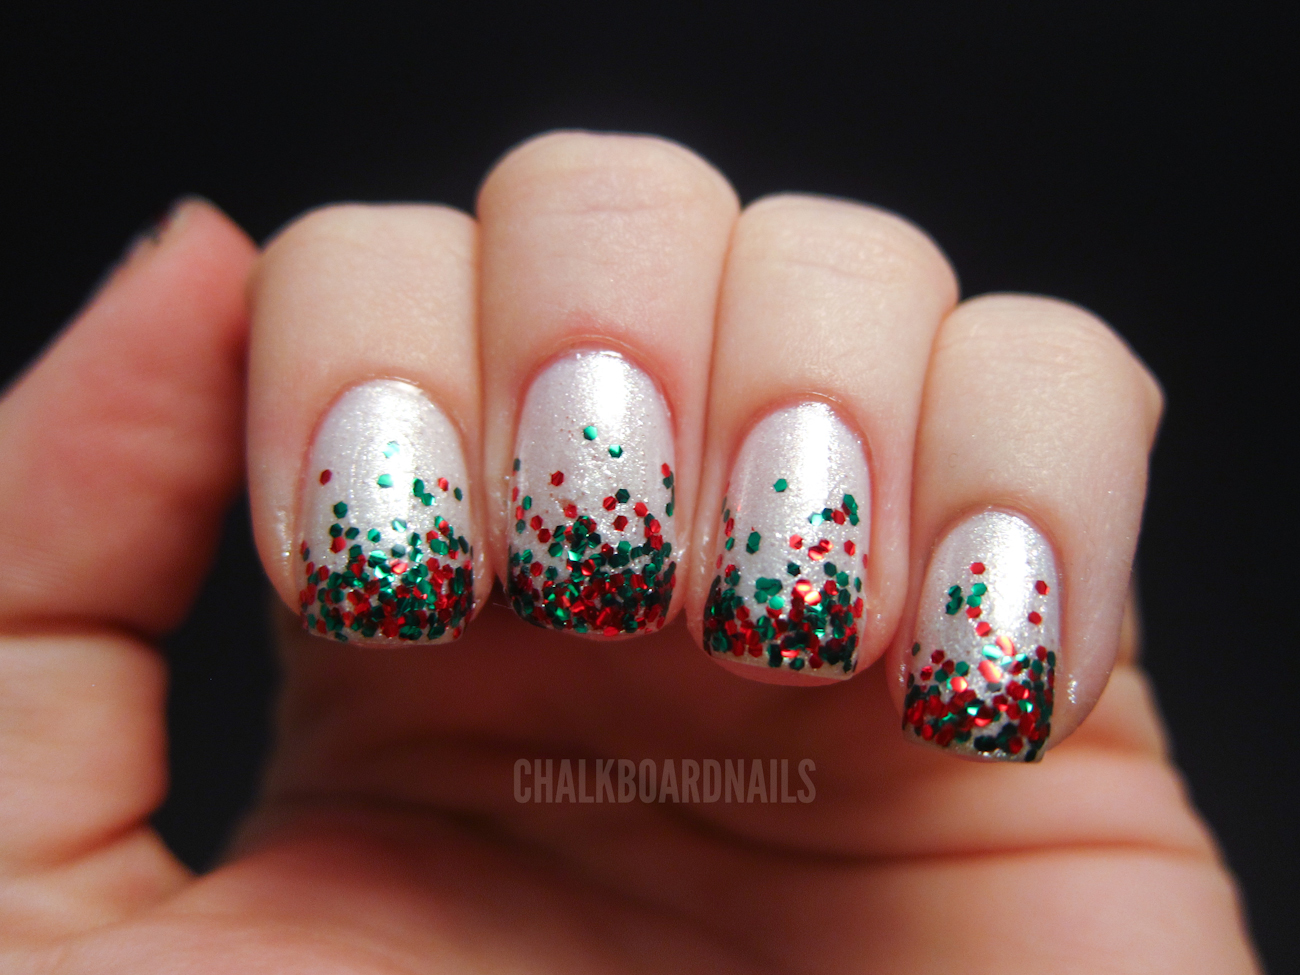 My Christmas Nails | Chalkboard Nails | Nail Art Blog